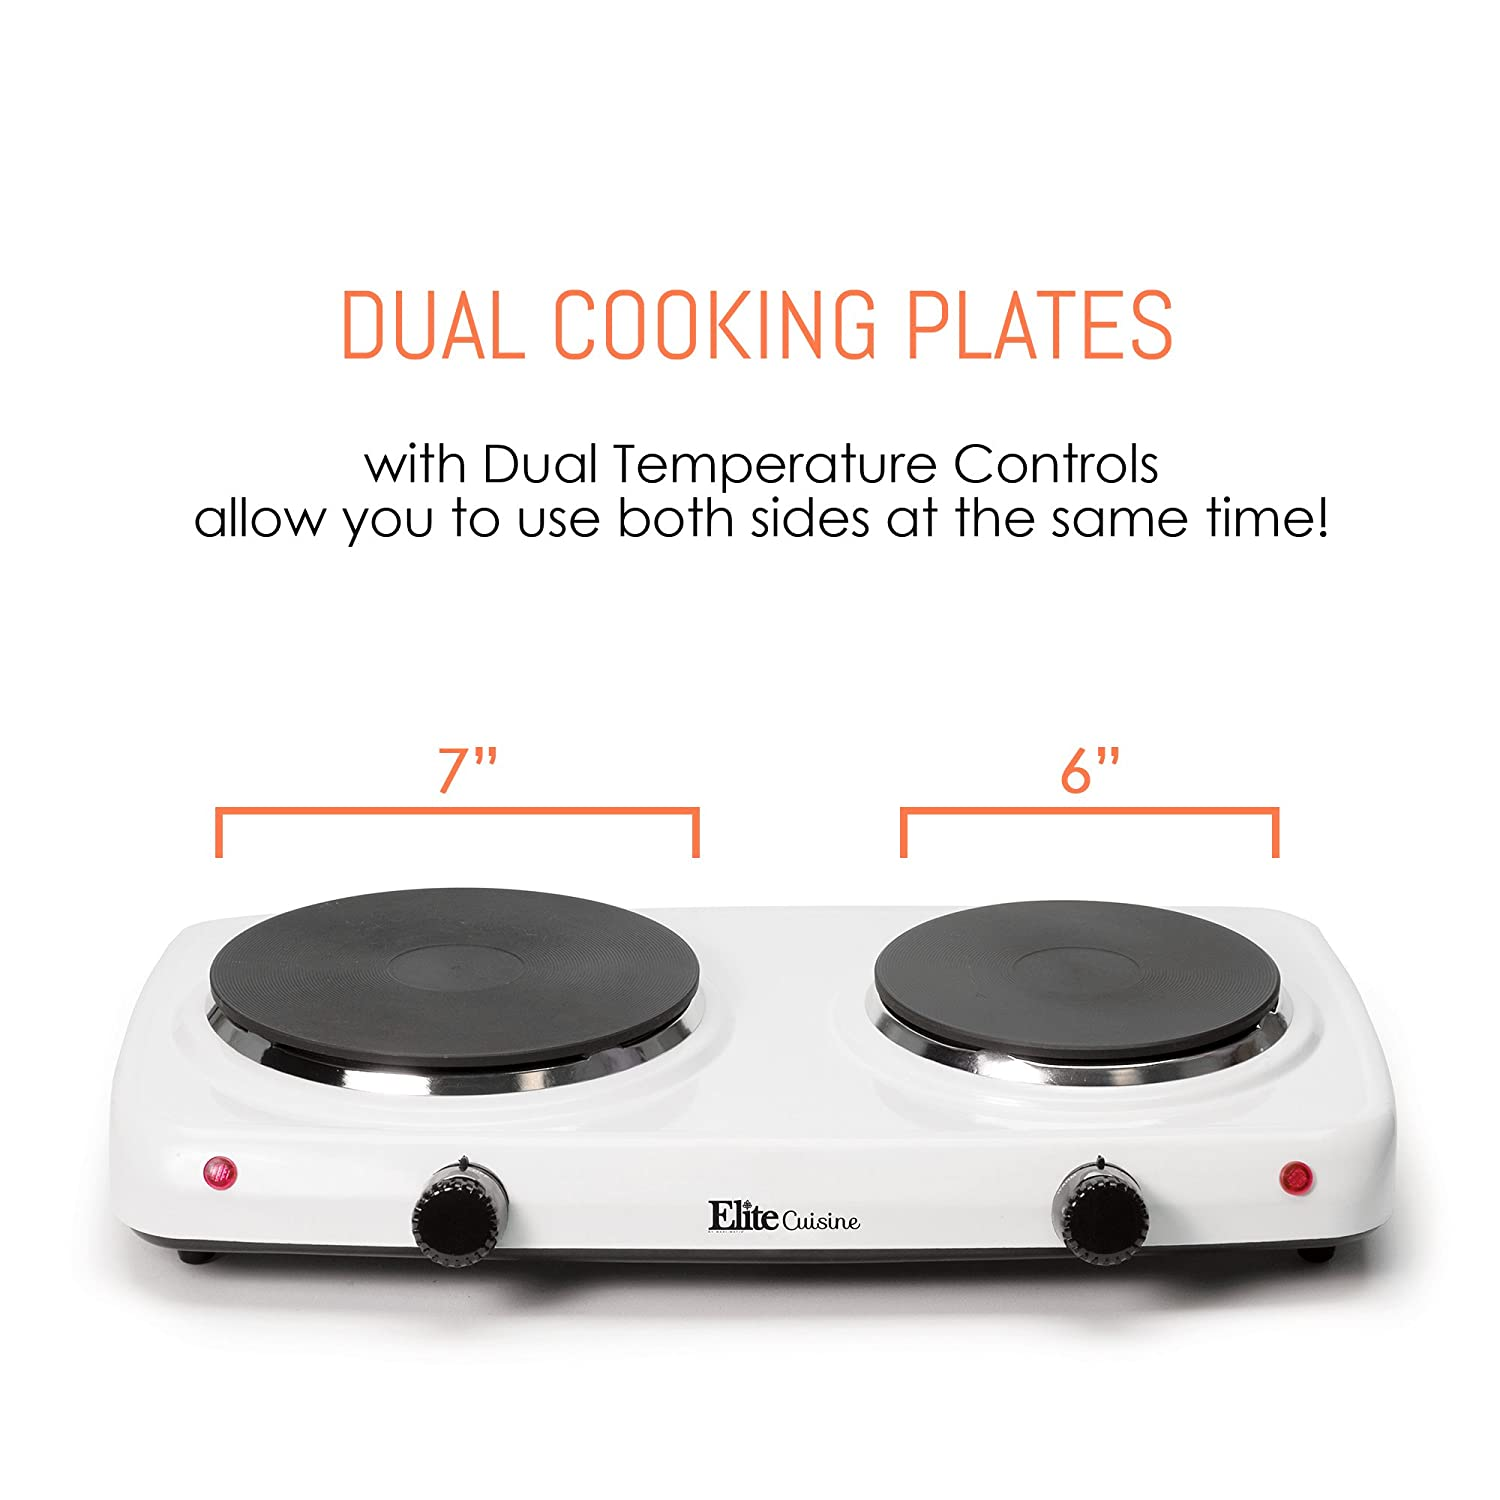 Elite Cuisine Edb 302f Maxi Matic Electric Double Buffet Induction Heater Circuit Hot Plate Cooker Homemade Burner With Dual Temperature Control White Kitchen Dining